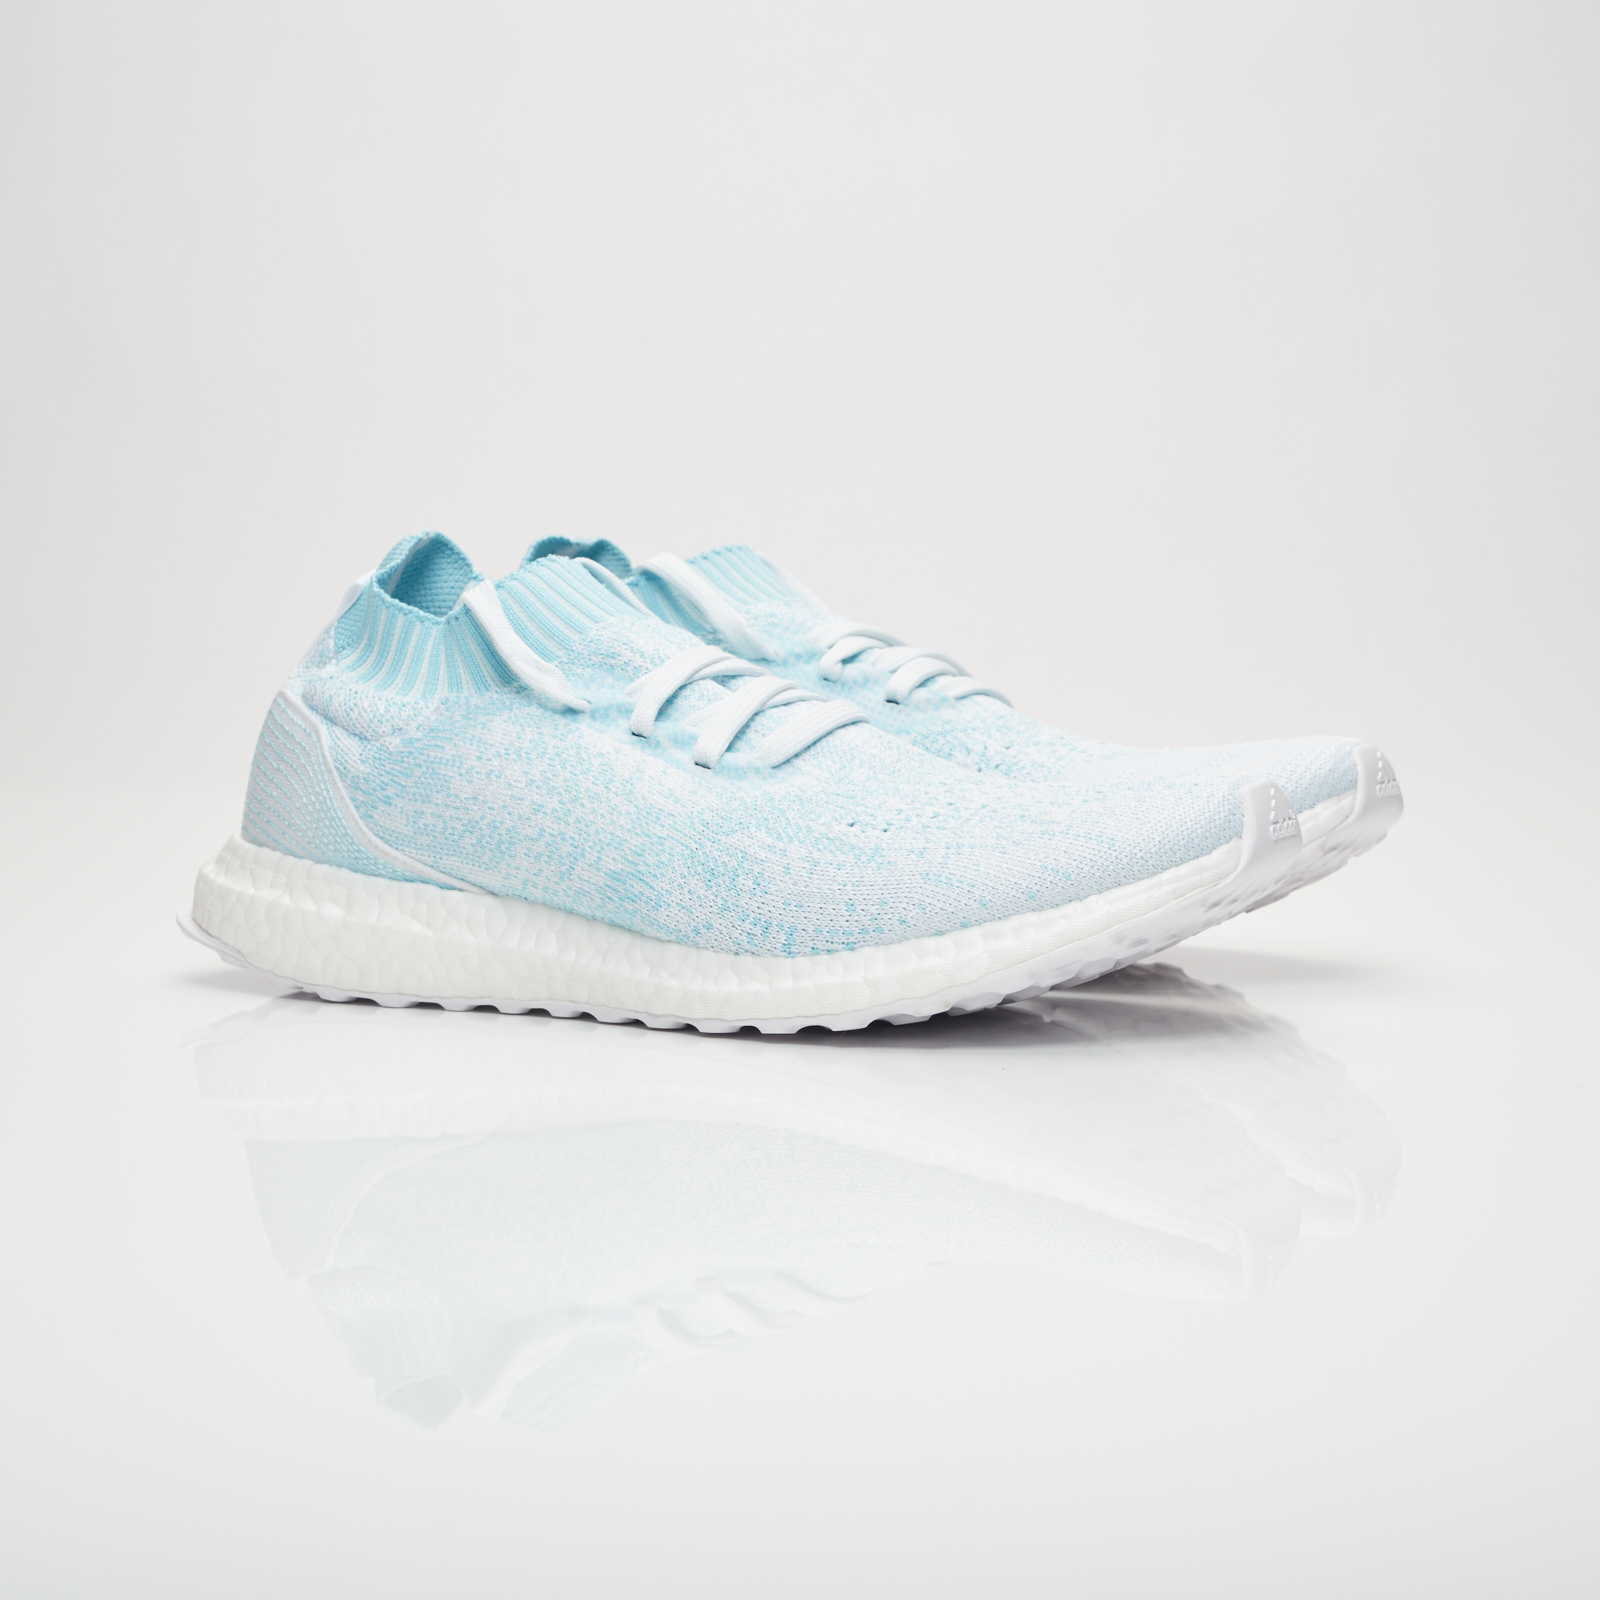 fe329fc8bad adidas UltraBOOST Uncaged Parley - Cp9686 - Sneakersnstuff ...